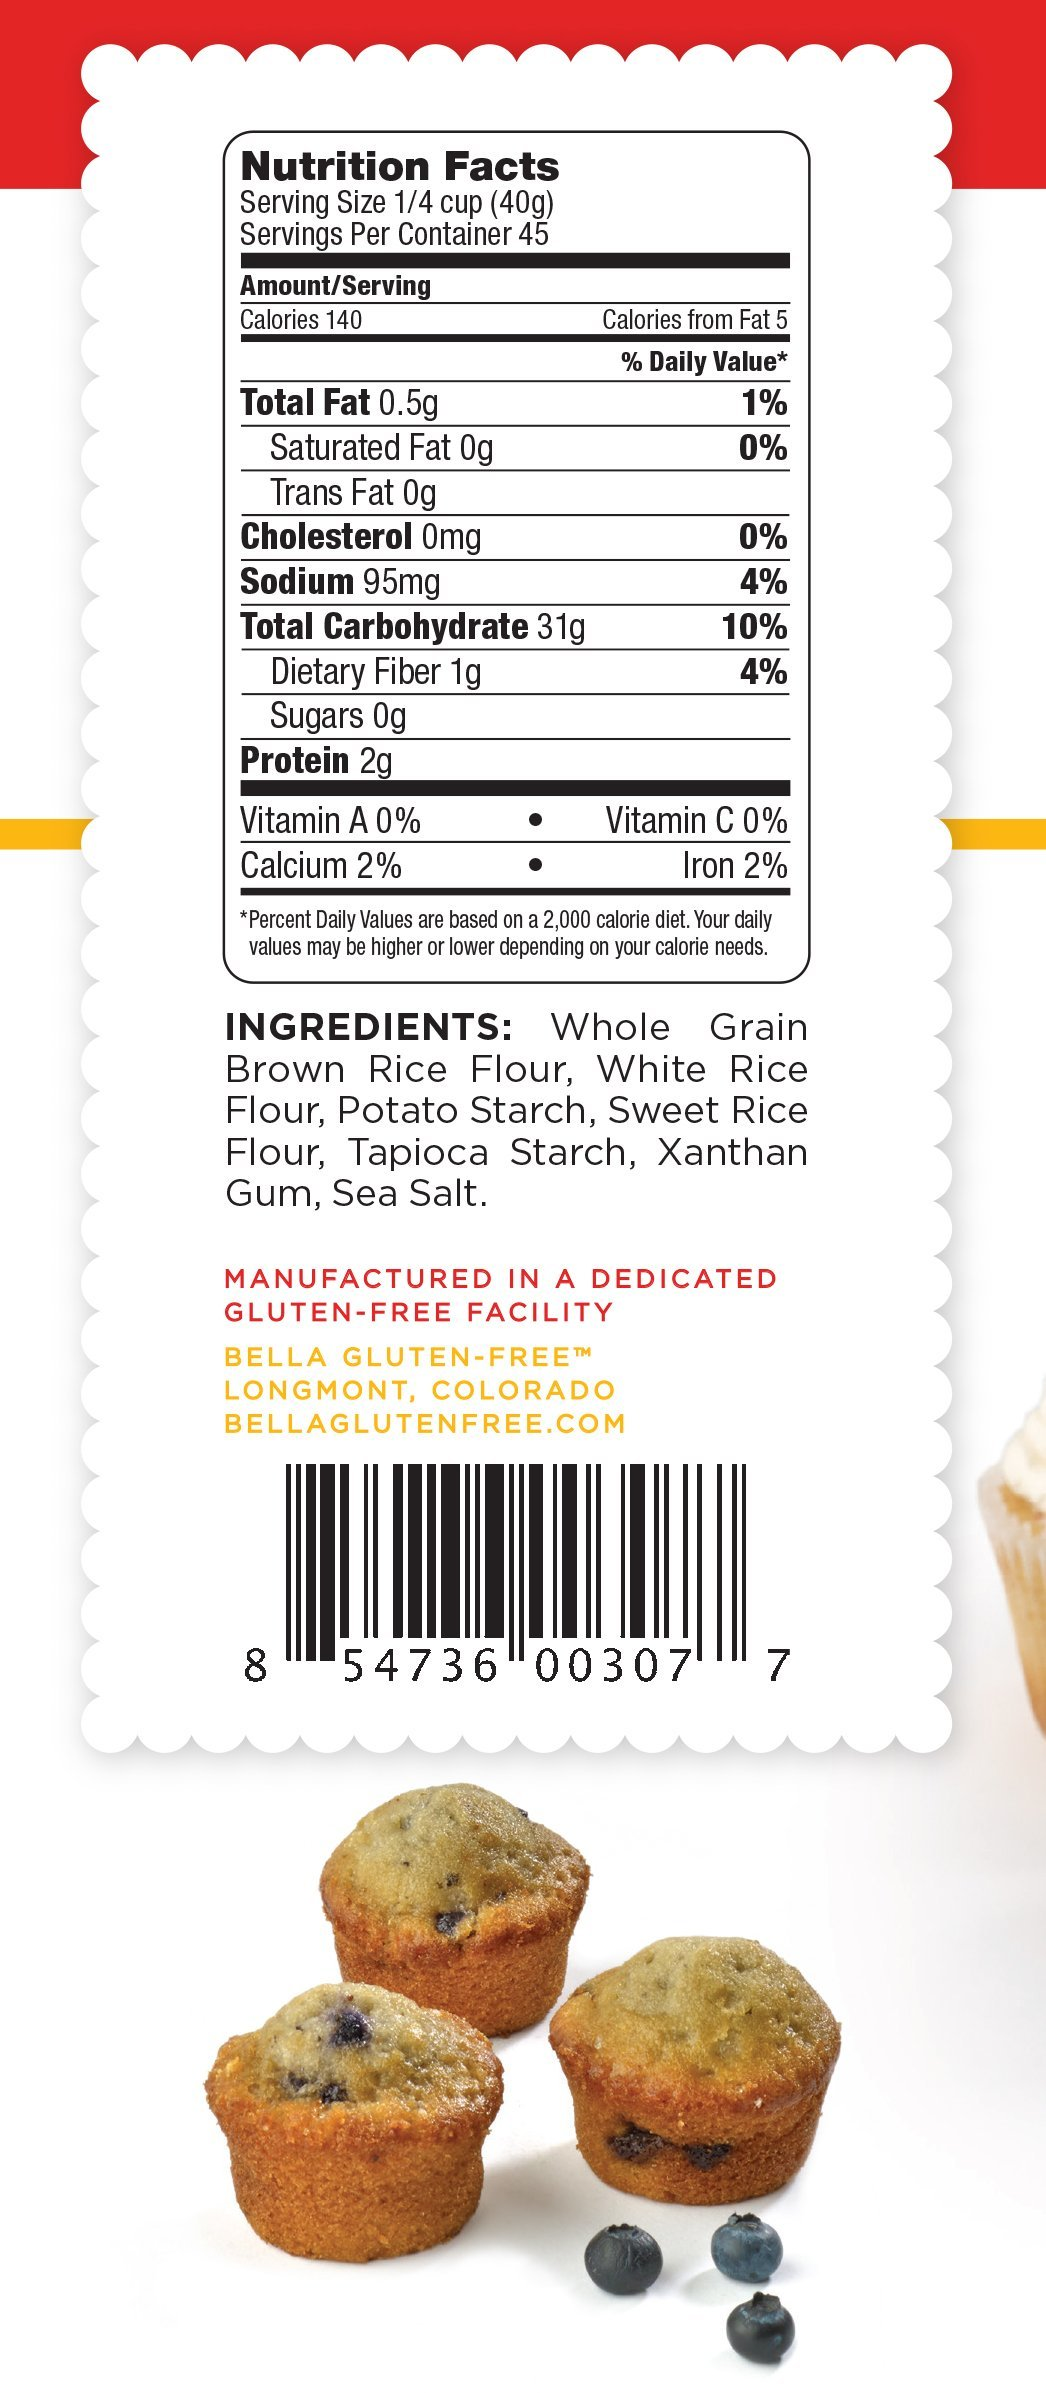 Bella Gluten Free All Purpose Baking Mix Family Size 64 Oz (Pack of 3/192 oz total)